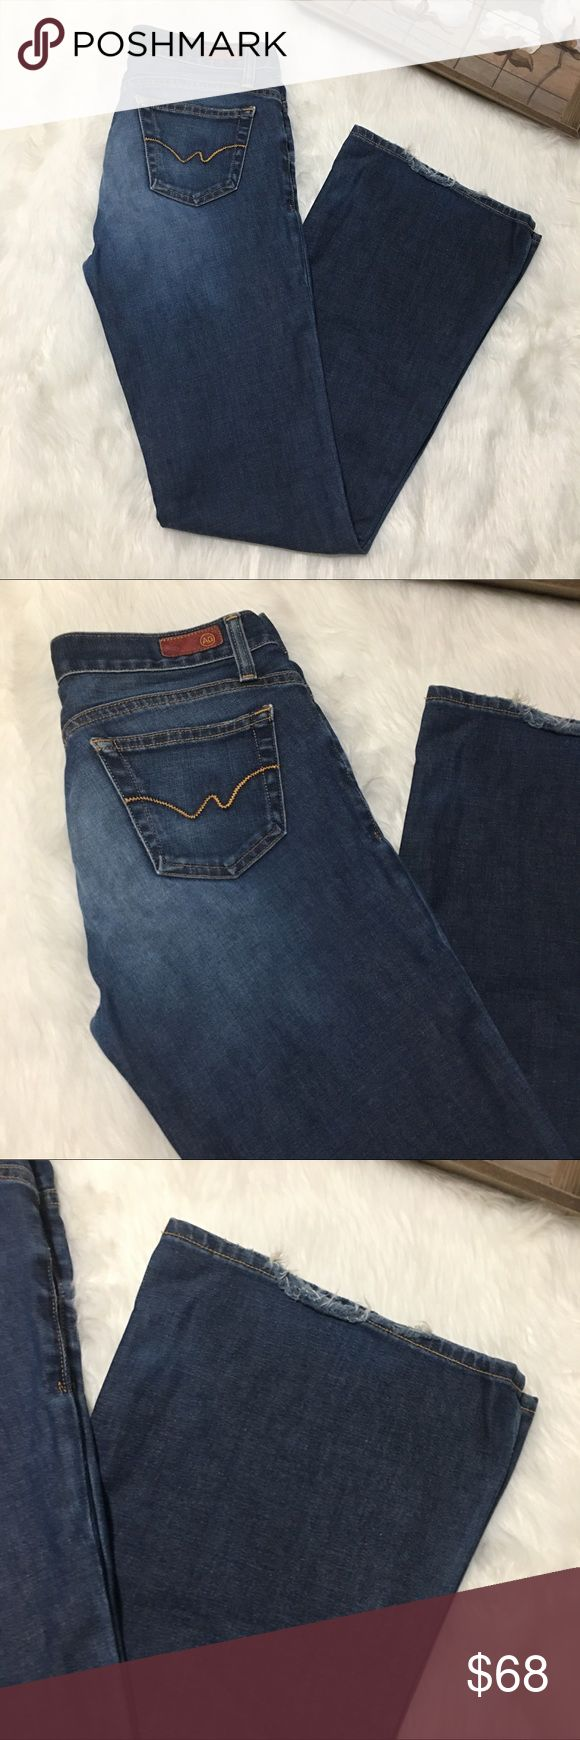 AG Adriano Goldschmied The Legend Denim Jeans 27 AG Adriano Goldschmied Denim Blue Jeans. Flare size 27 in excellent gently worn condition. Ag Adriano Goldschmied Jeans Flare & Wide Leg